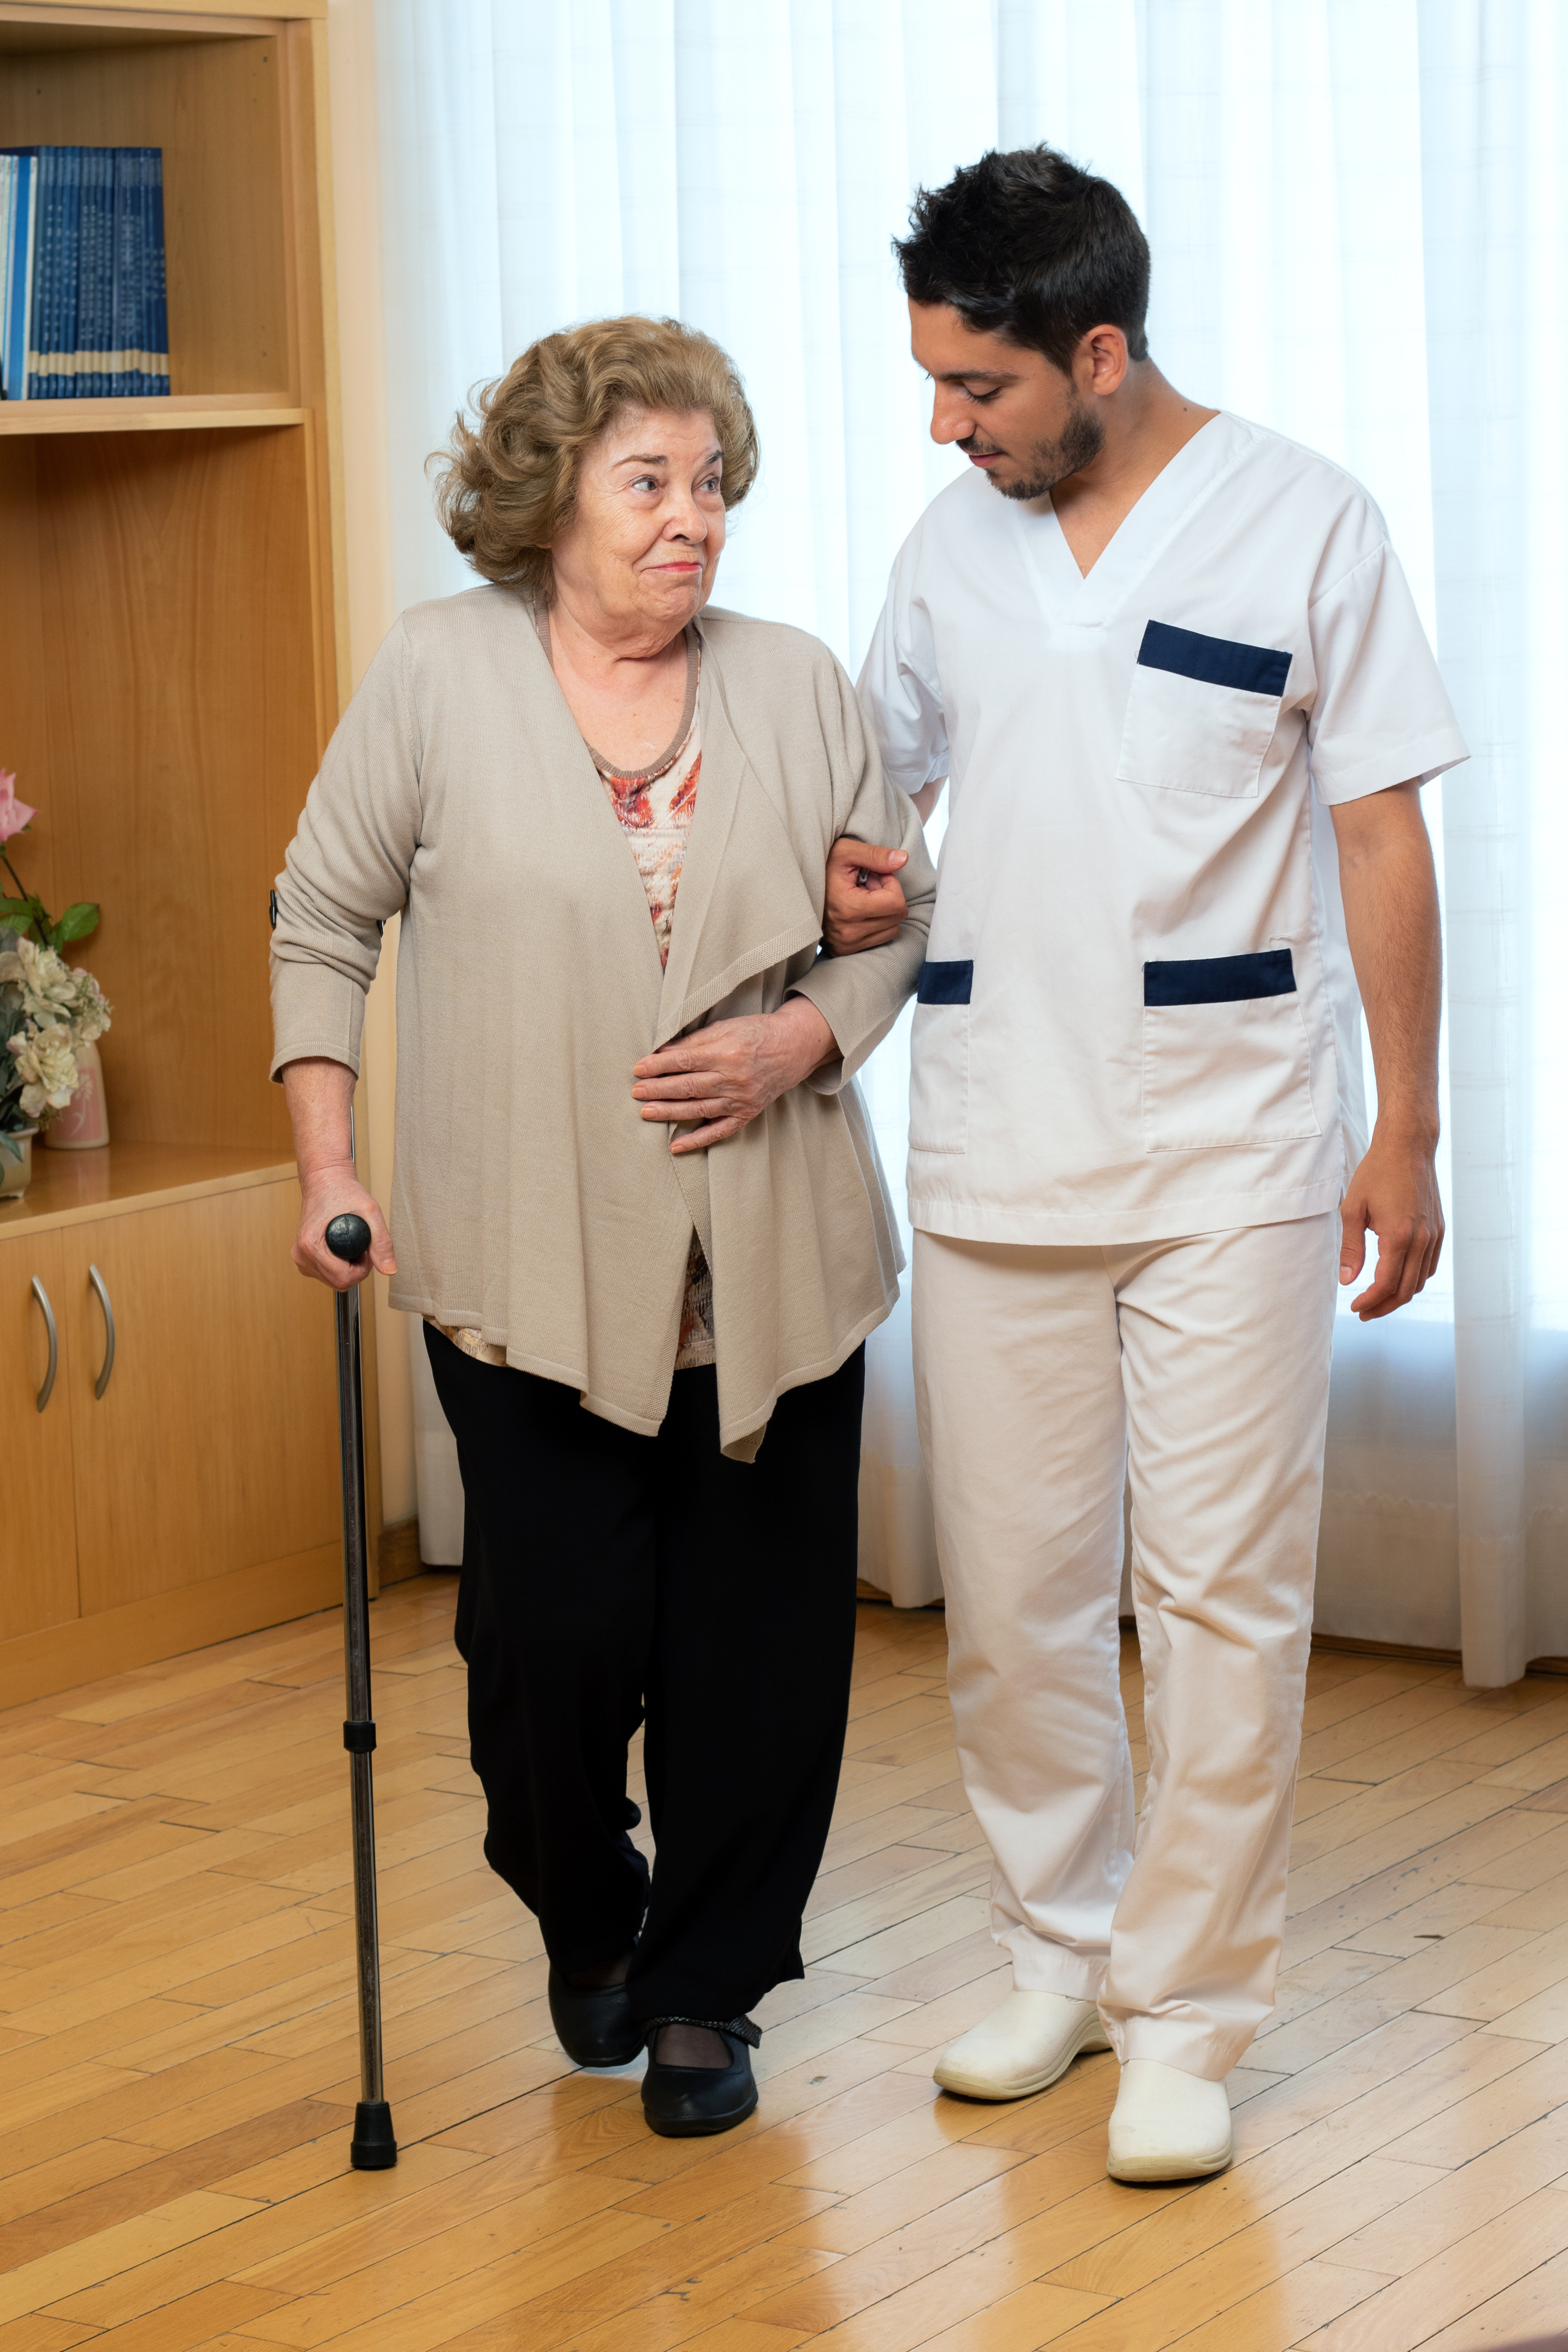 Senior woman with cane walking next to male physiotherapist at home.